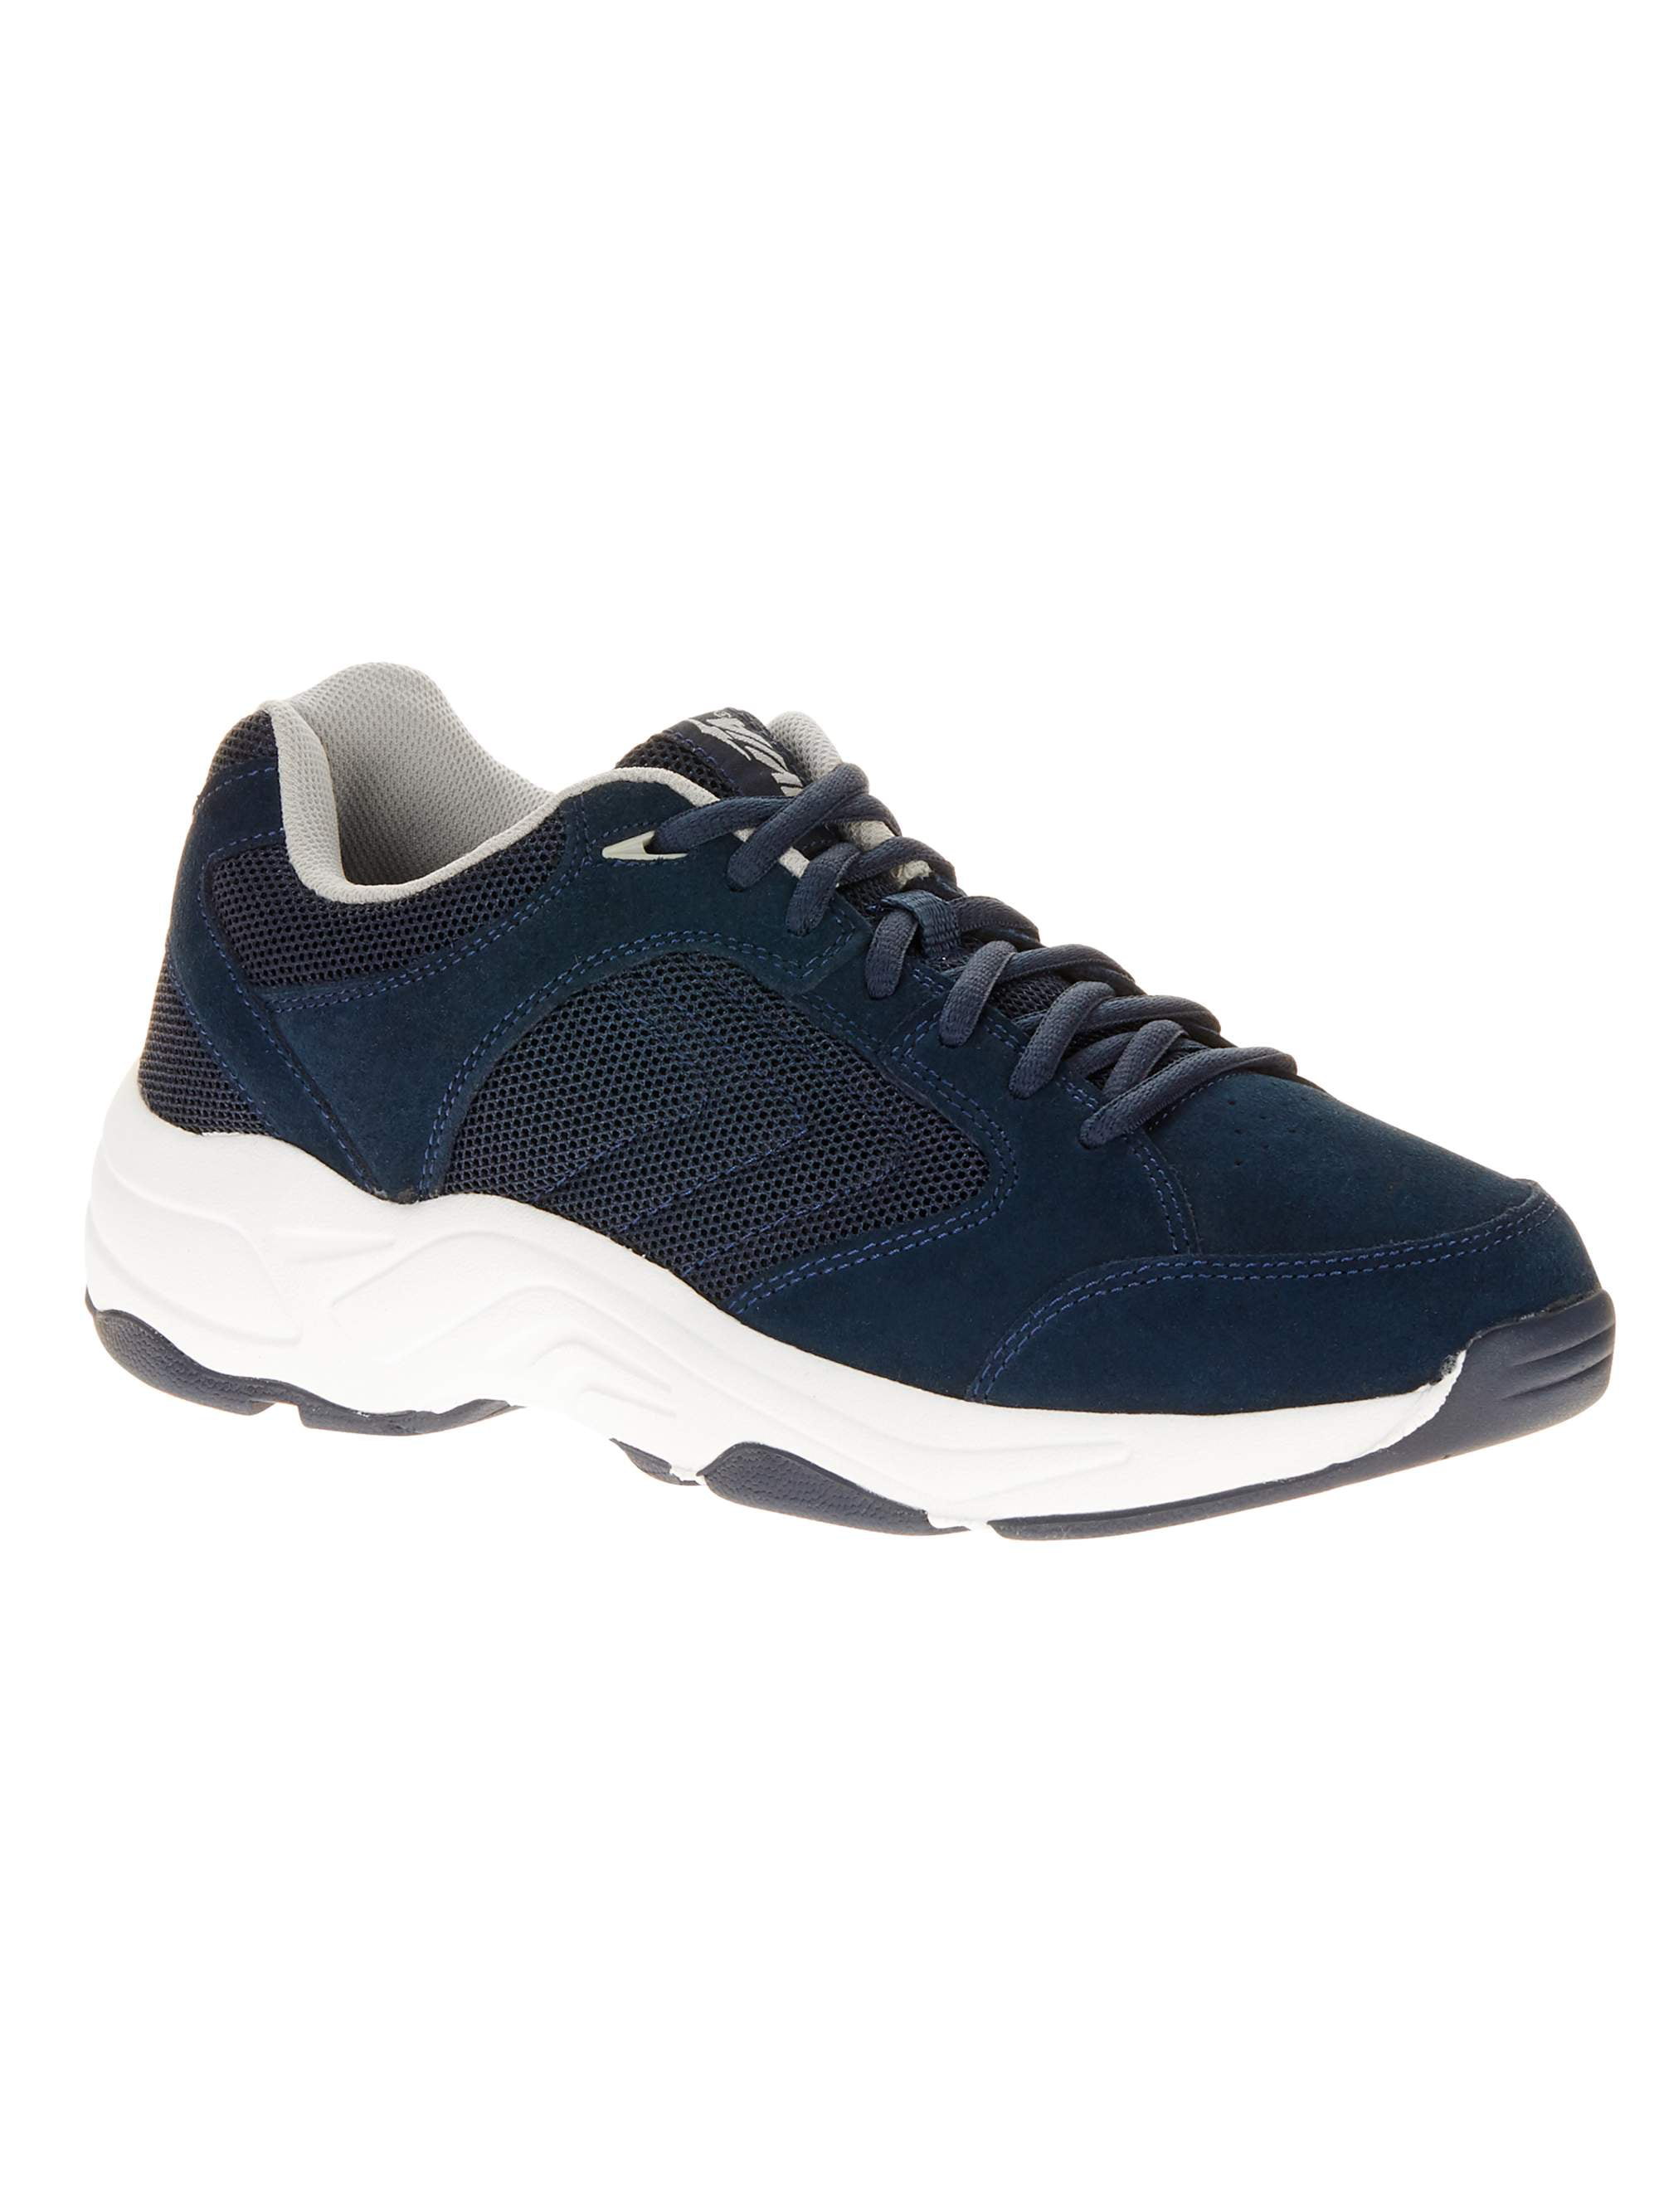 Avia Men's Corey Lace Up Athletic Sneaker by Generic